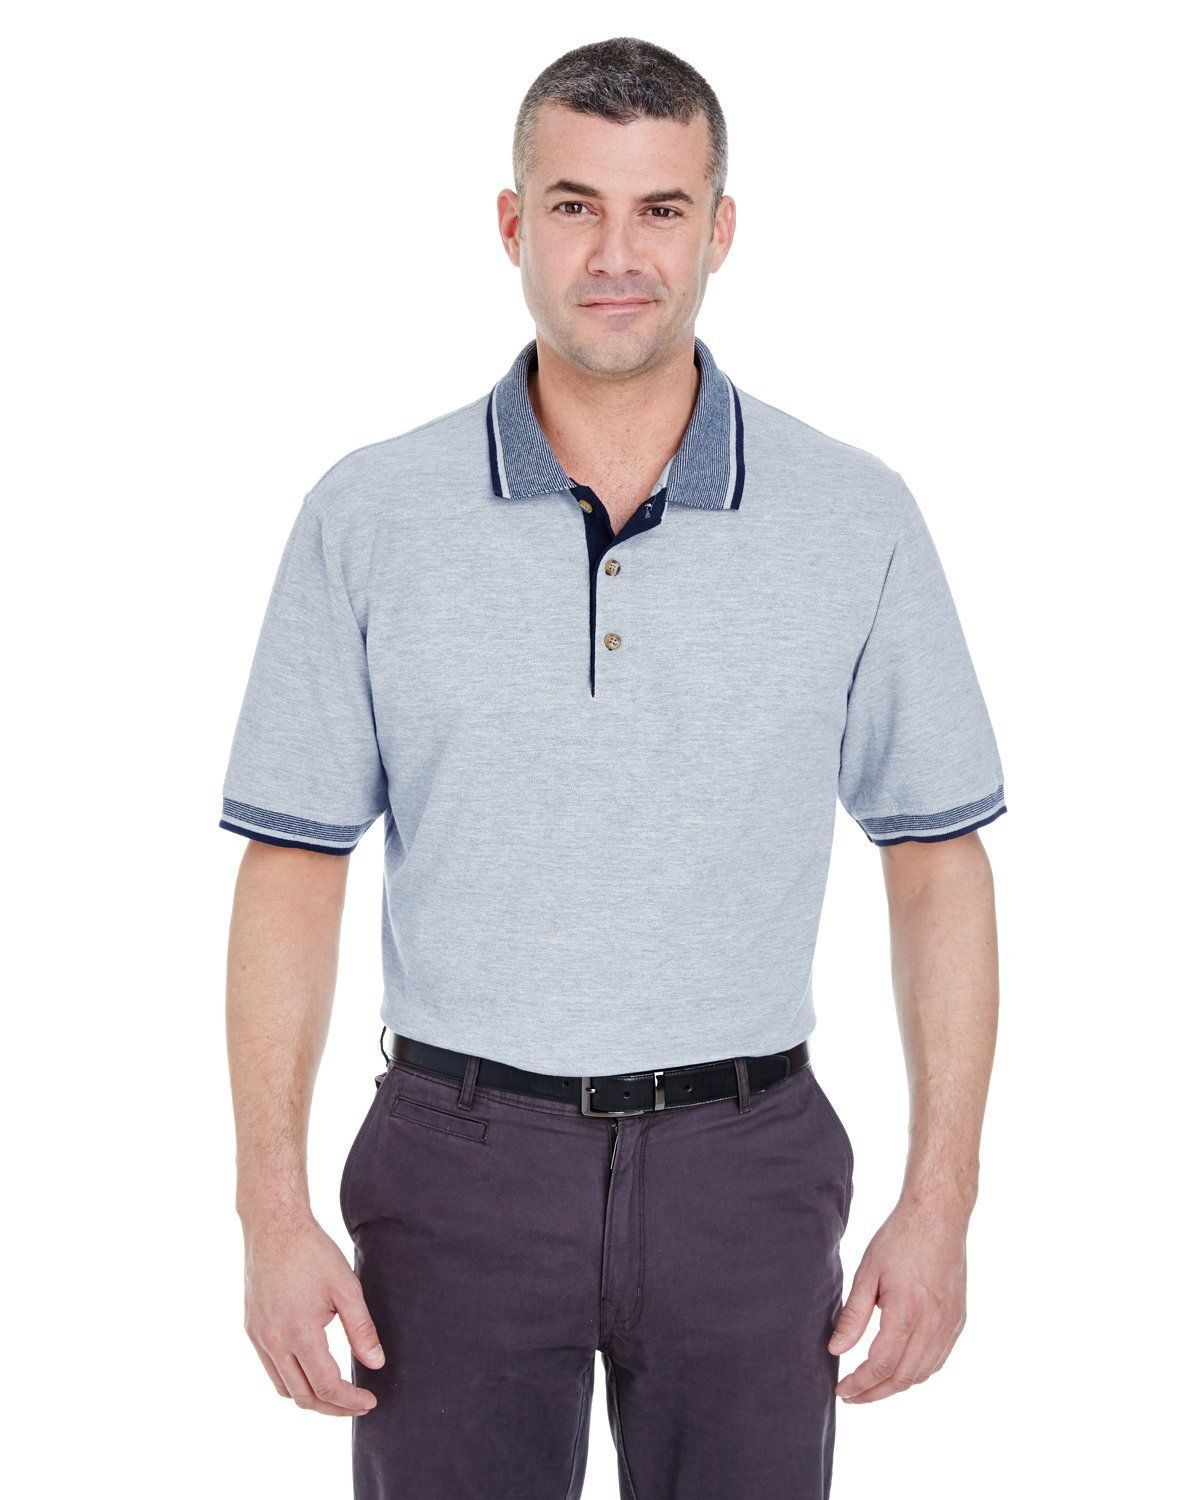 UltraClub 8537 Men/'s Color-Body Classic Pique Multi-Stripe Trim Polo Shirt